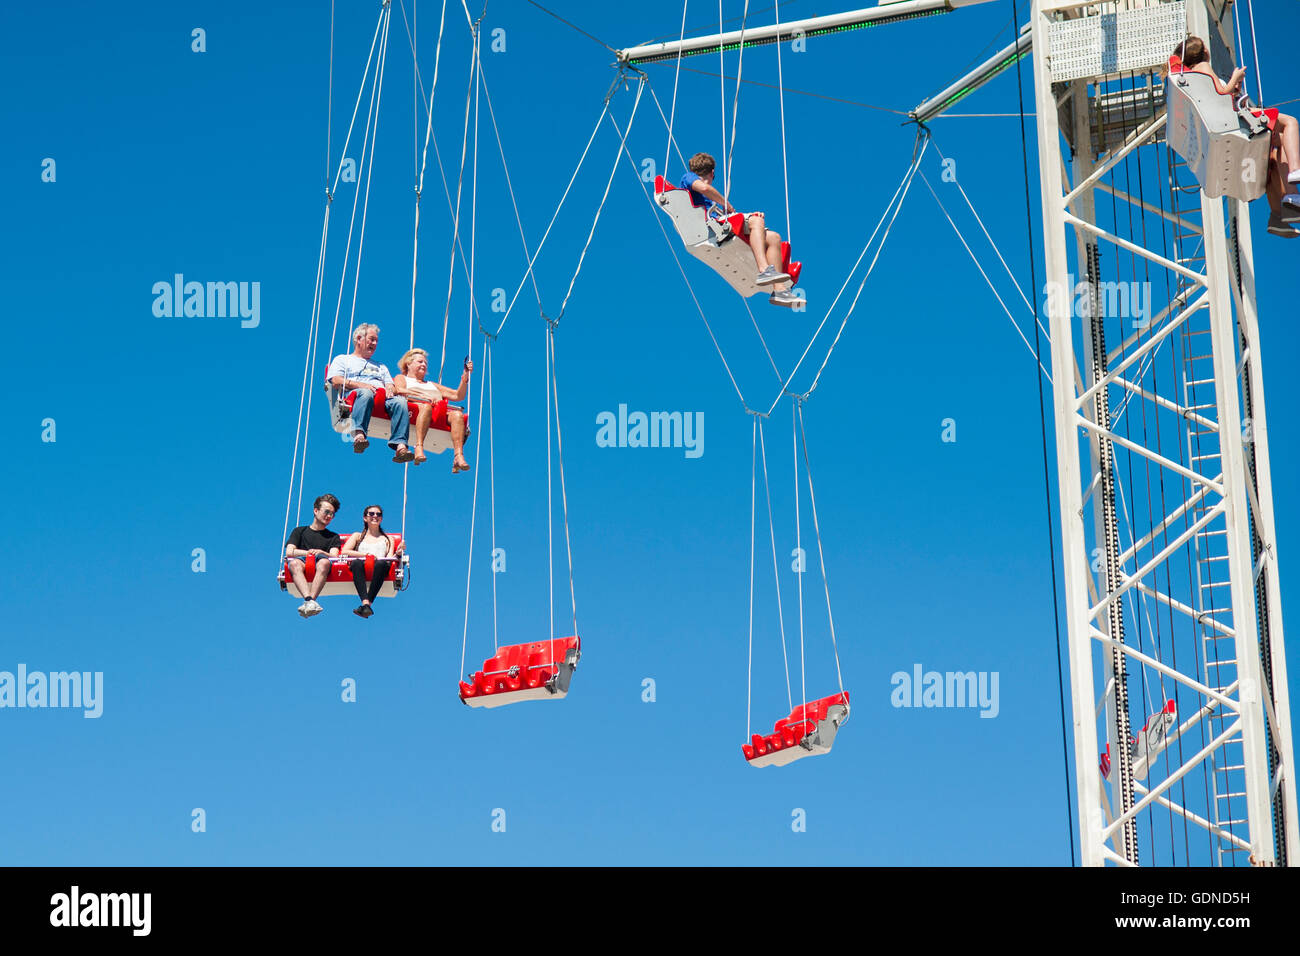 People on fairground ride swings high up in the air, UK - Stock Image